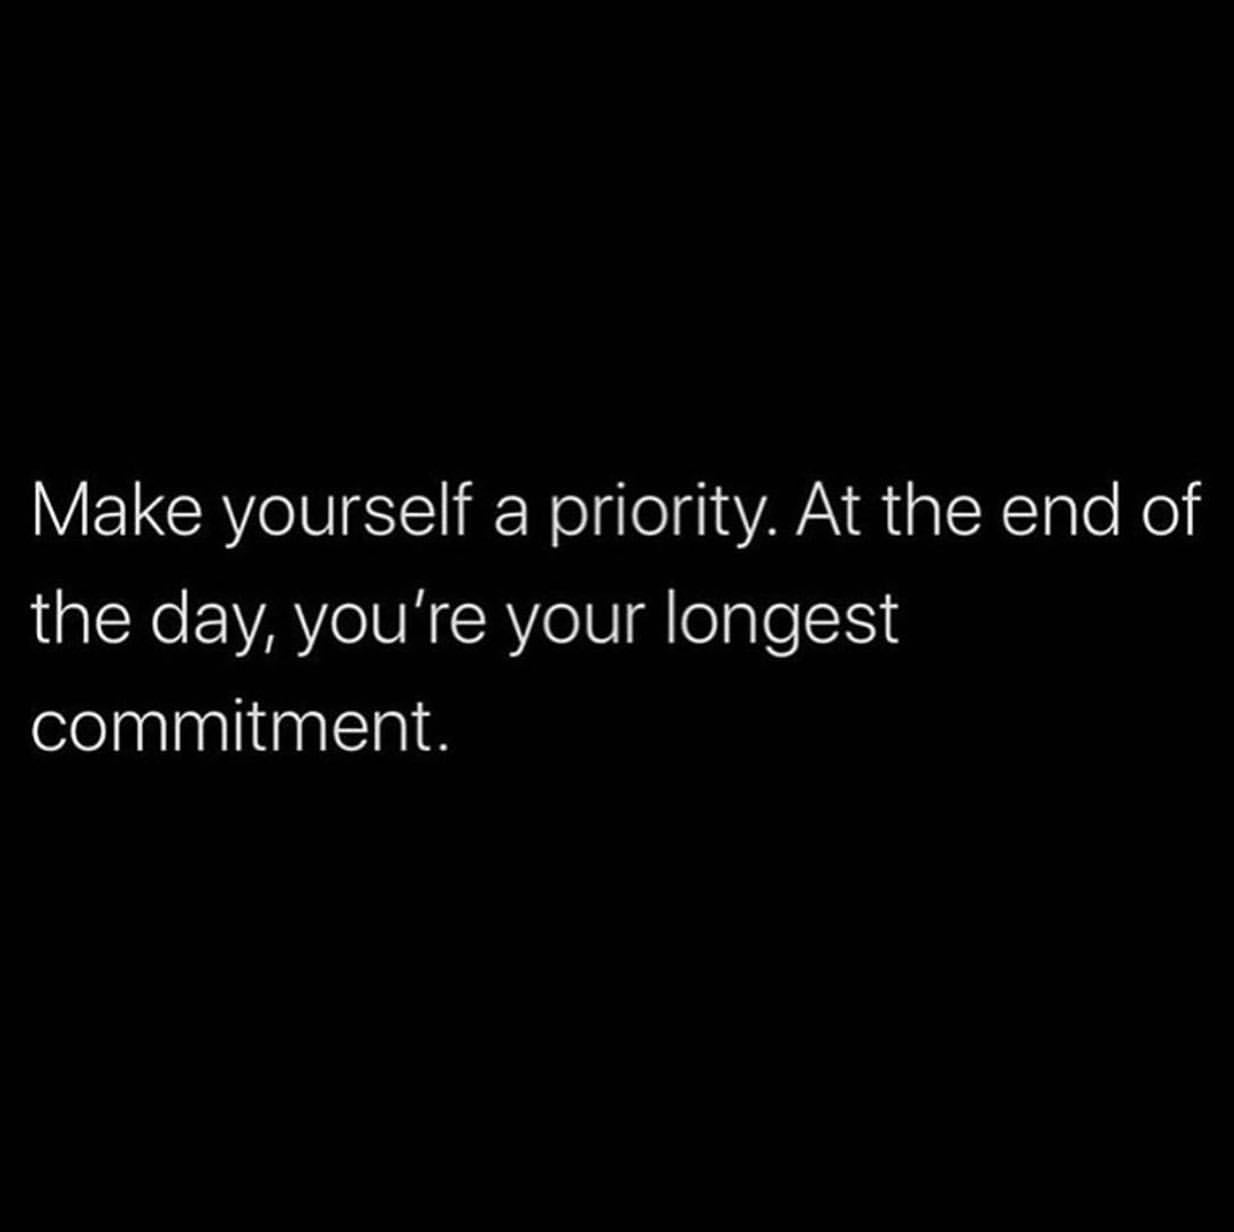 [Image] Priorities